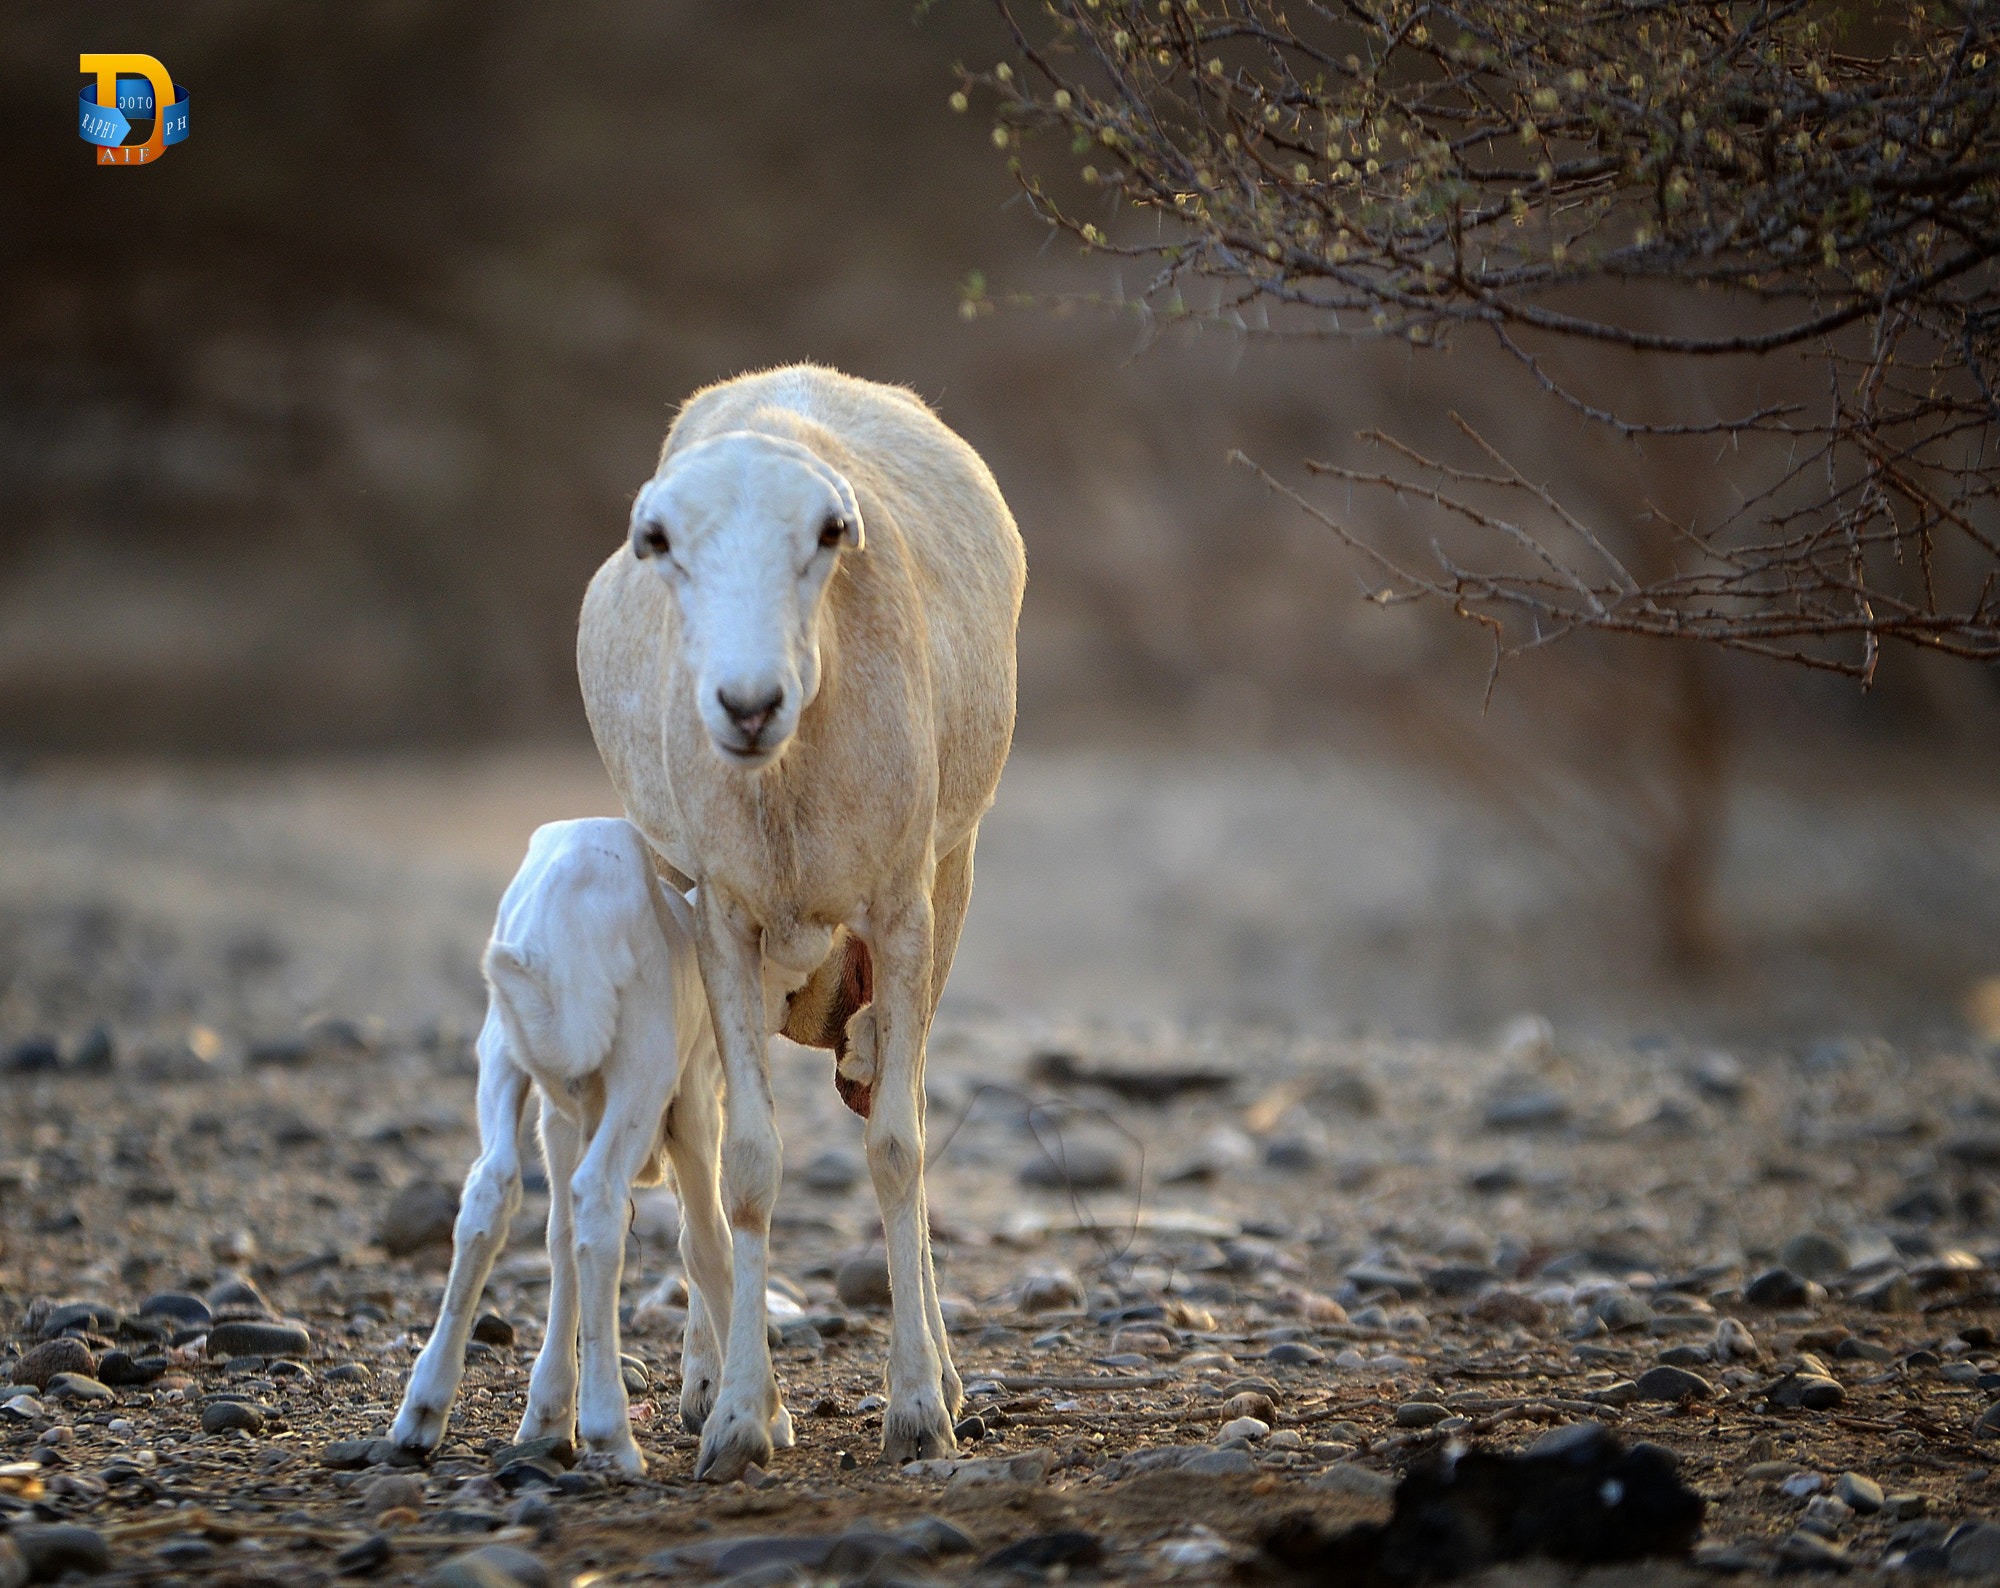 Photograph sheep mother by Daifallah Mansour on 500px